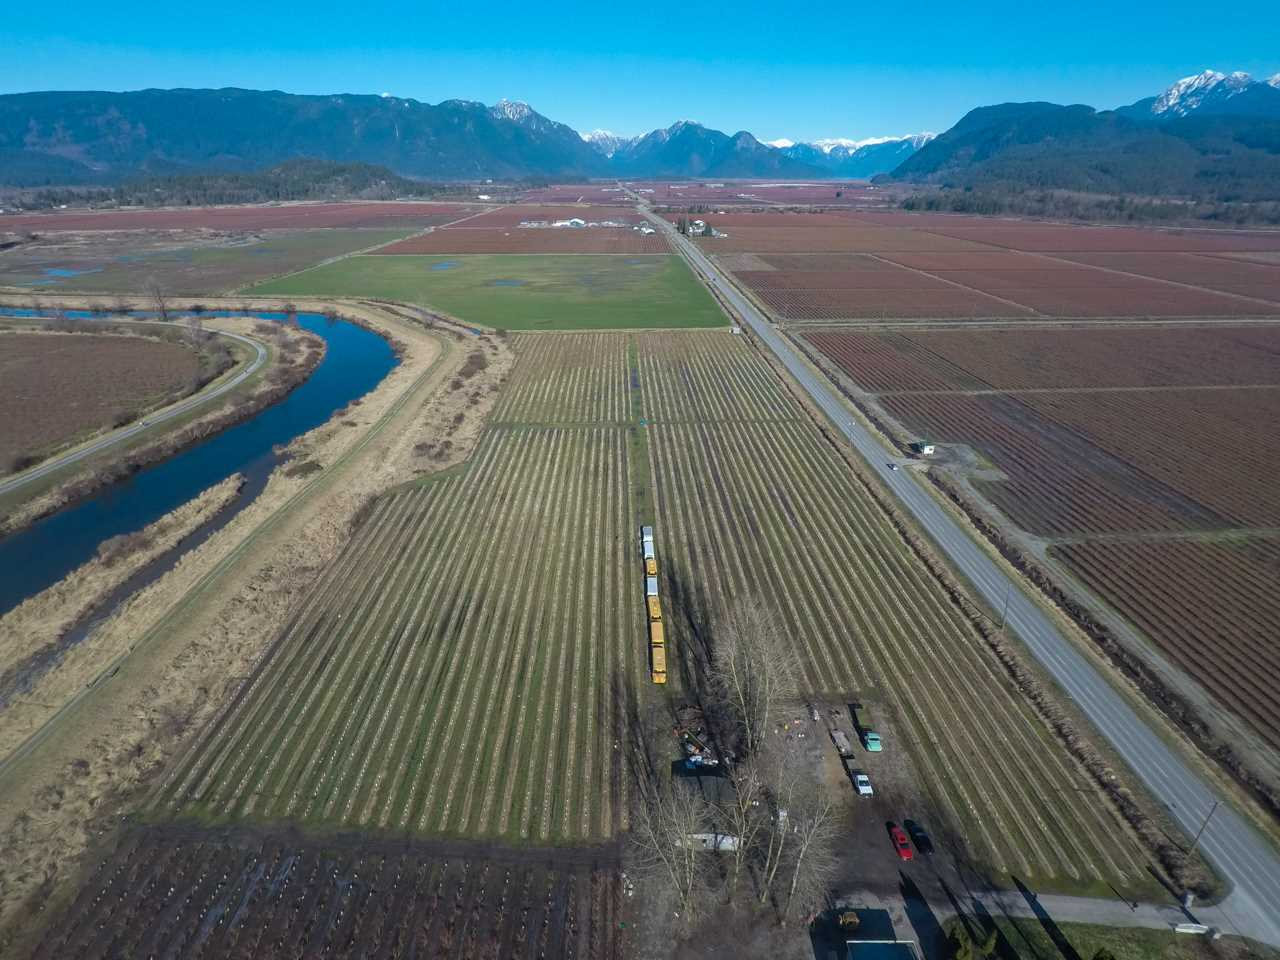 Rare opportunity to own a 30 acre blueberry farm in prime Pitt Meadows with recently updated farm home surrounded by stunning panoramic mountain views! Updated farm home is over 3600 sq ft. The blueberries on the subject property produce approximately 320,000 lbs annually and include the top 3 varieties; Duke, Bluecrop & Elliott. The Berries are well cared for and growing in fertile soil. The property offers quick and convenient access to Lougheed Hwy, Golden Ears Way, & Pitt Meadows Regional Airport.